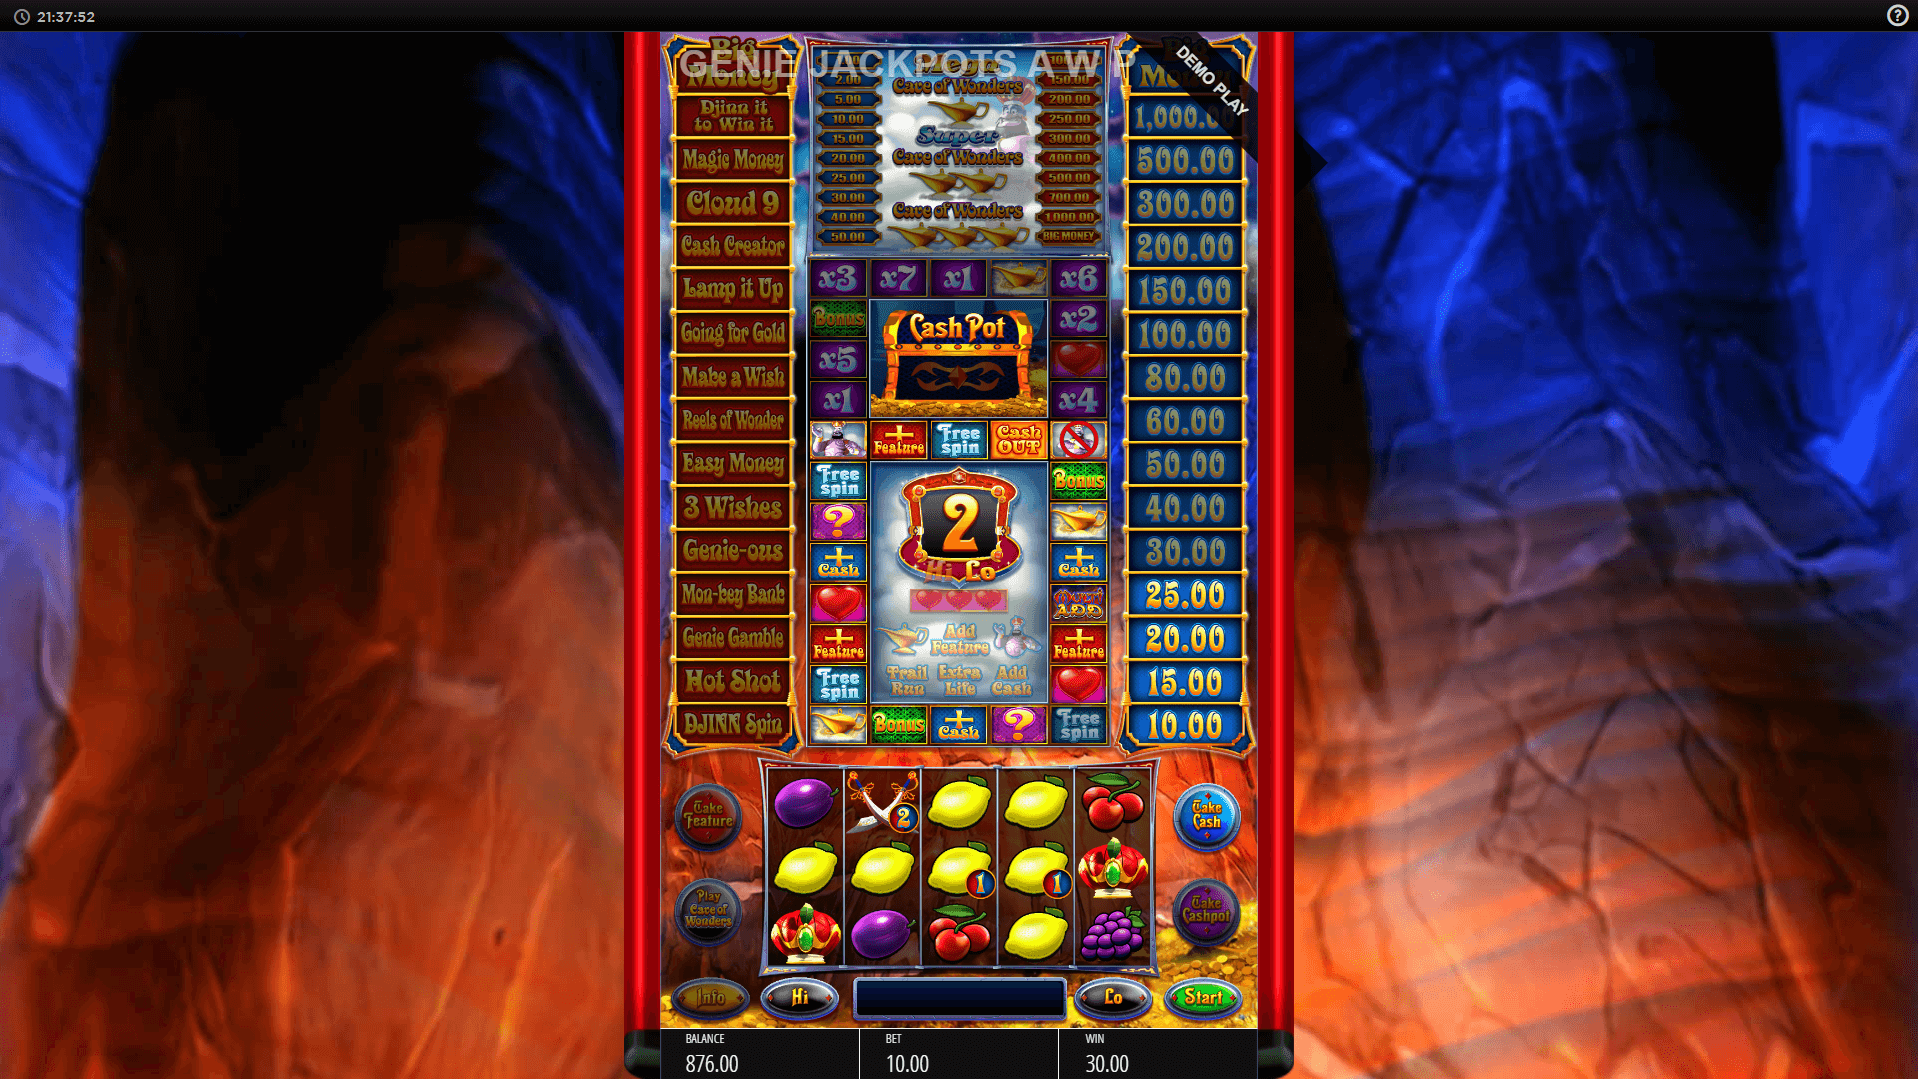 Genie Jackpots Cave Of Wonders Mobile Slots